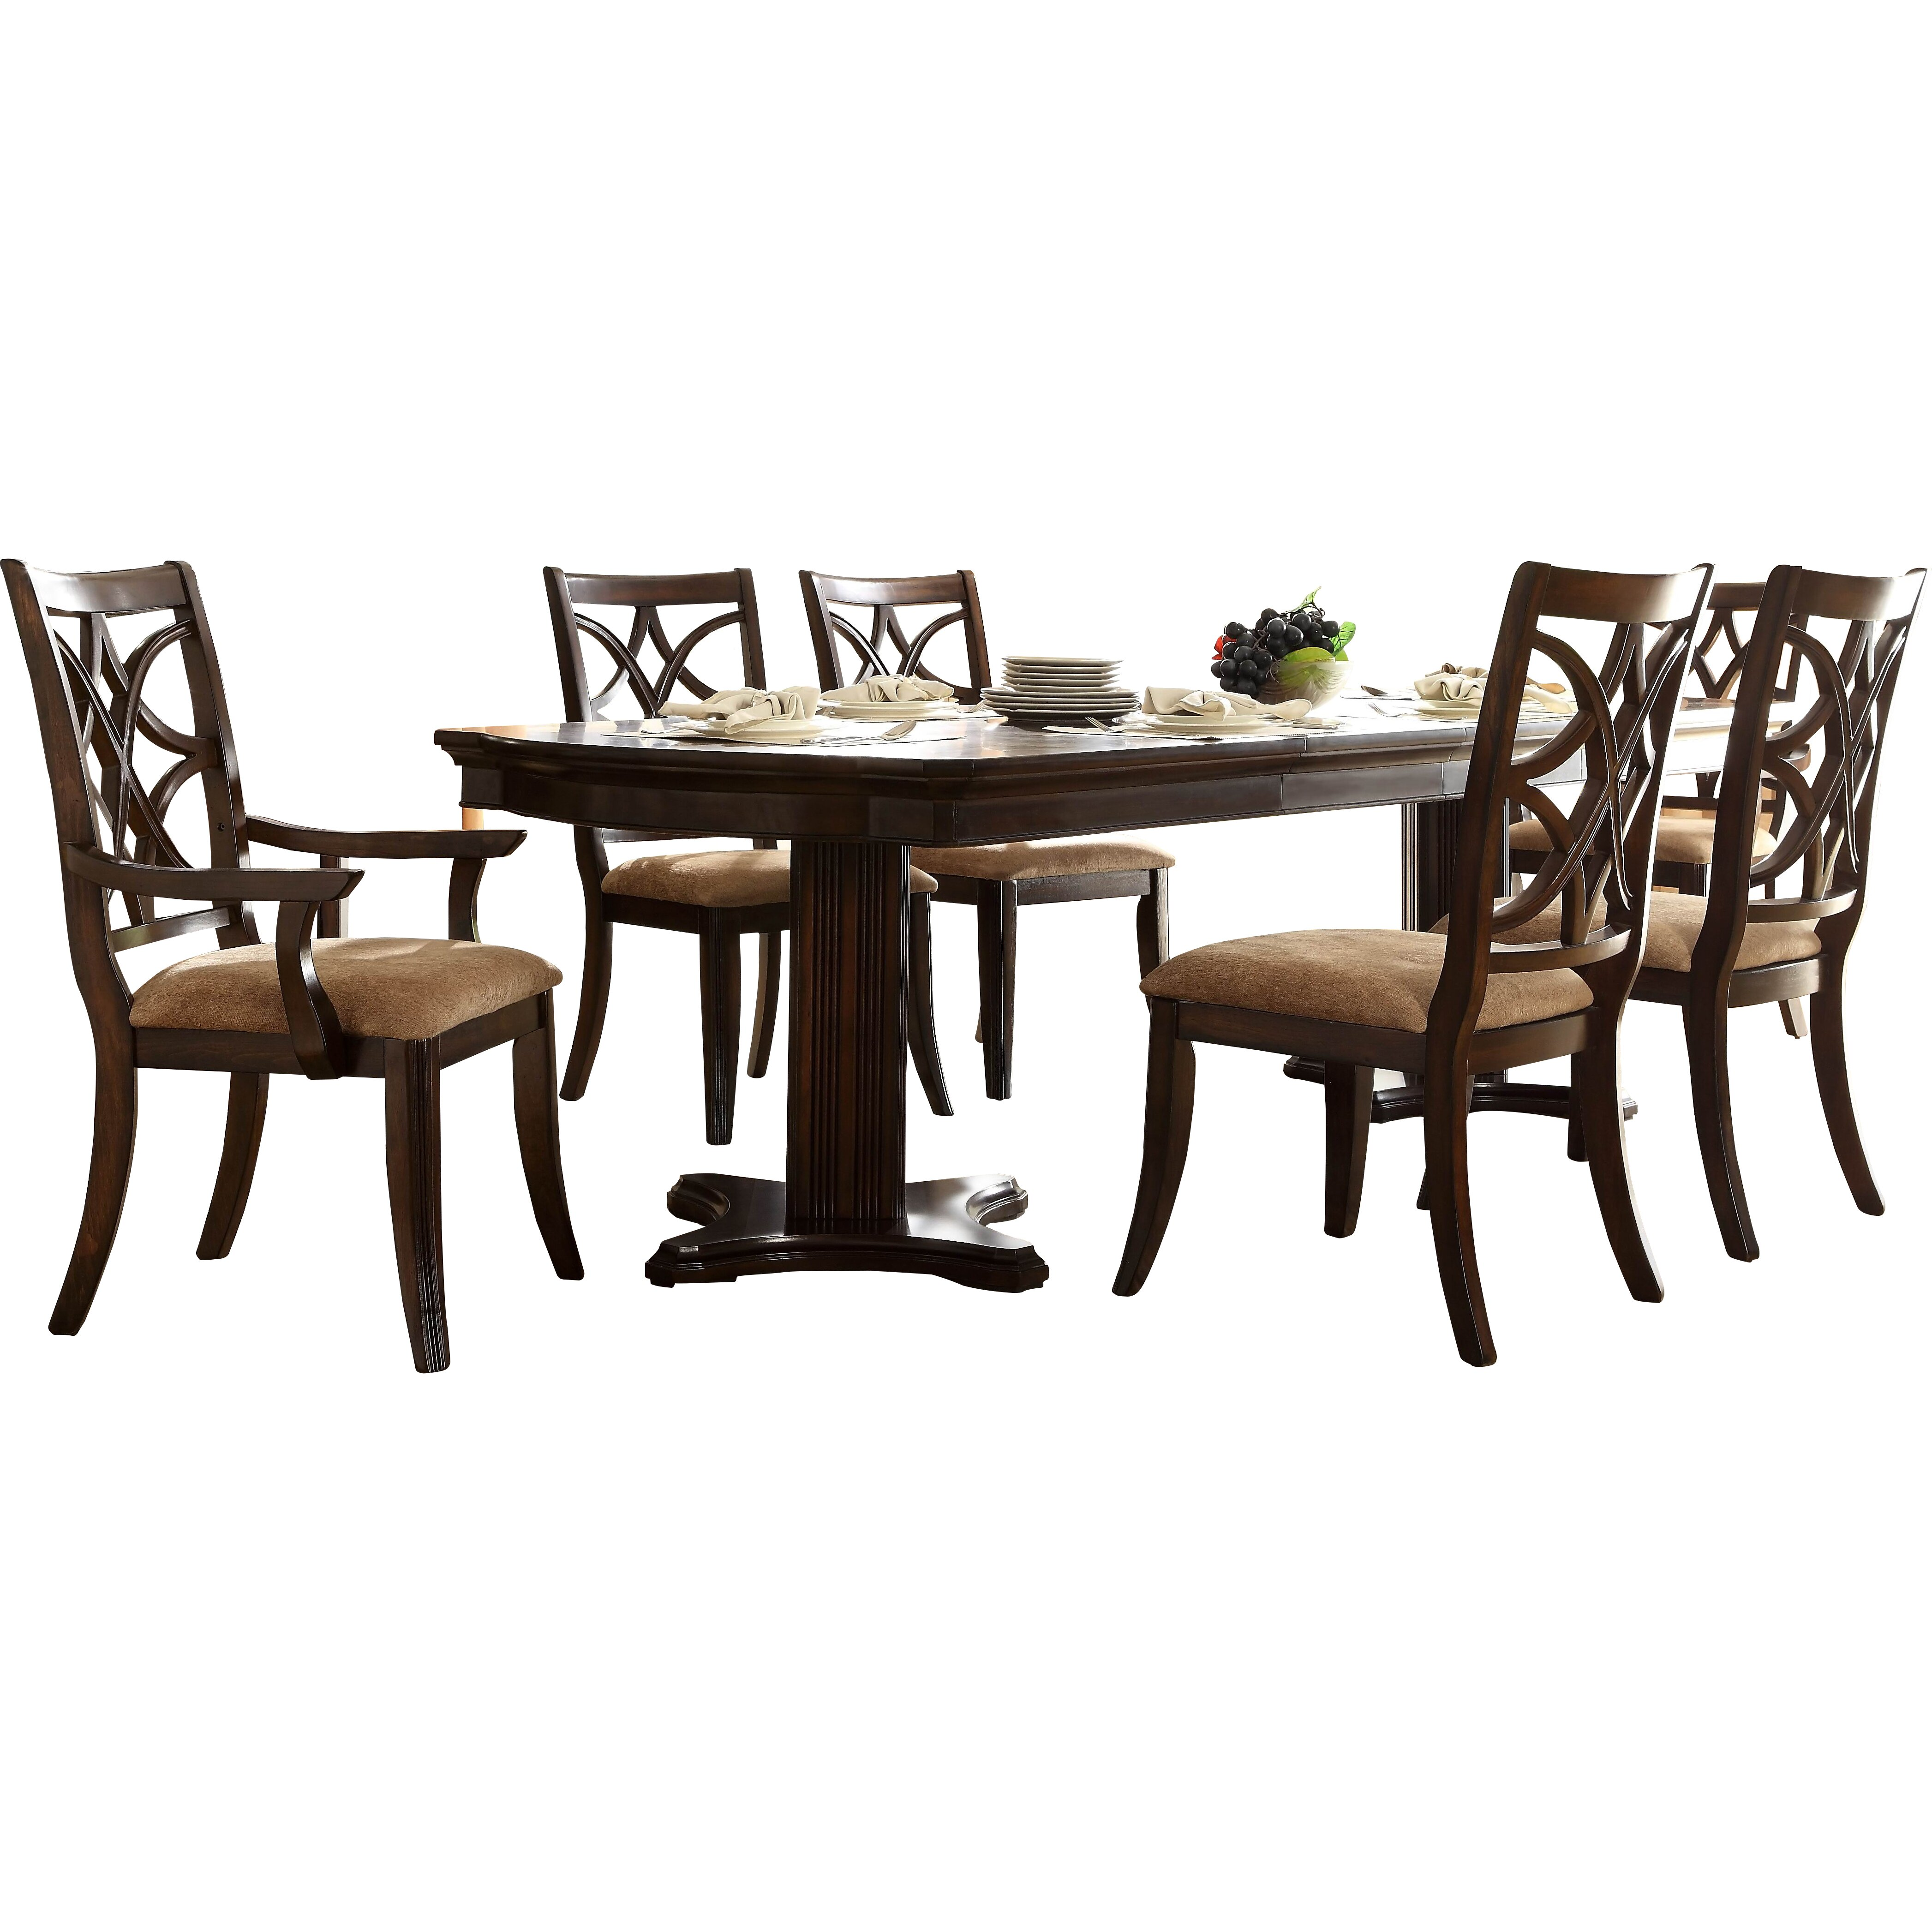 Dining Furniture 7 Piece Kitchen & Dining Room Sets Darby Home Co. Full resolution  portrait, nominally Width 4187 Height 4187 pixels, portrait with #965F35.